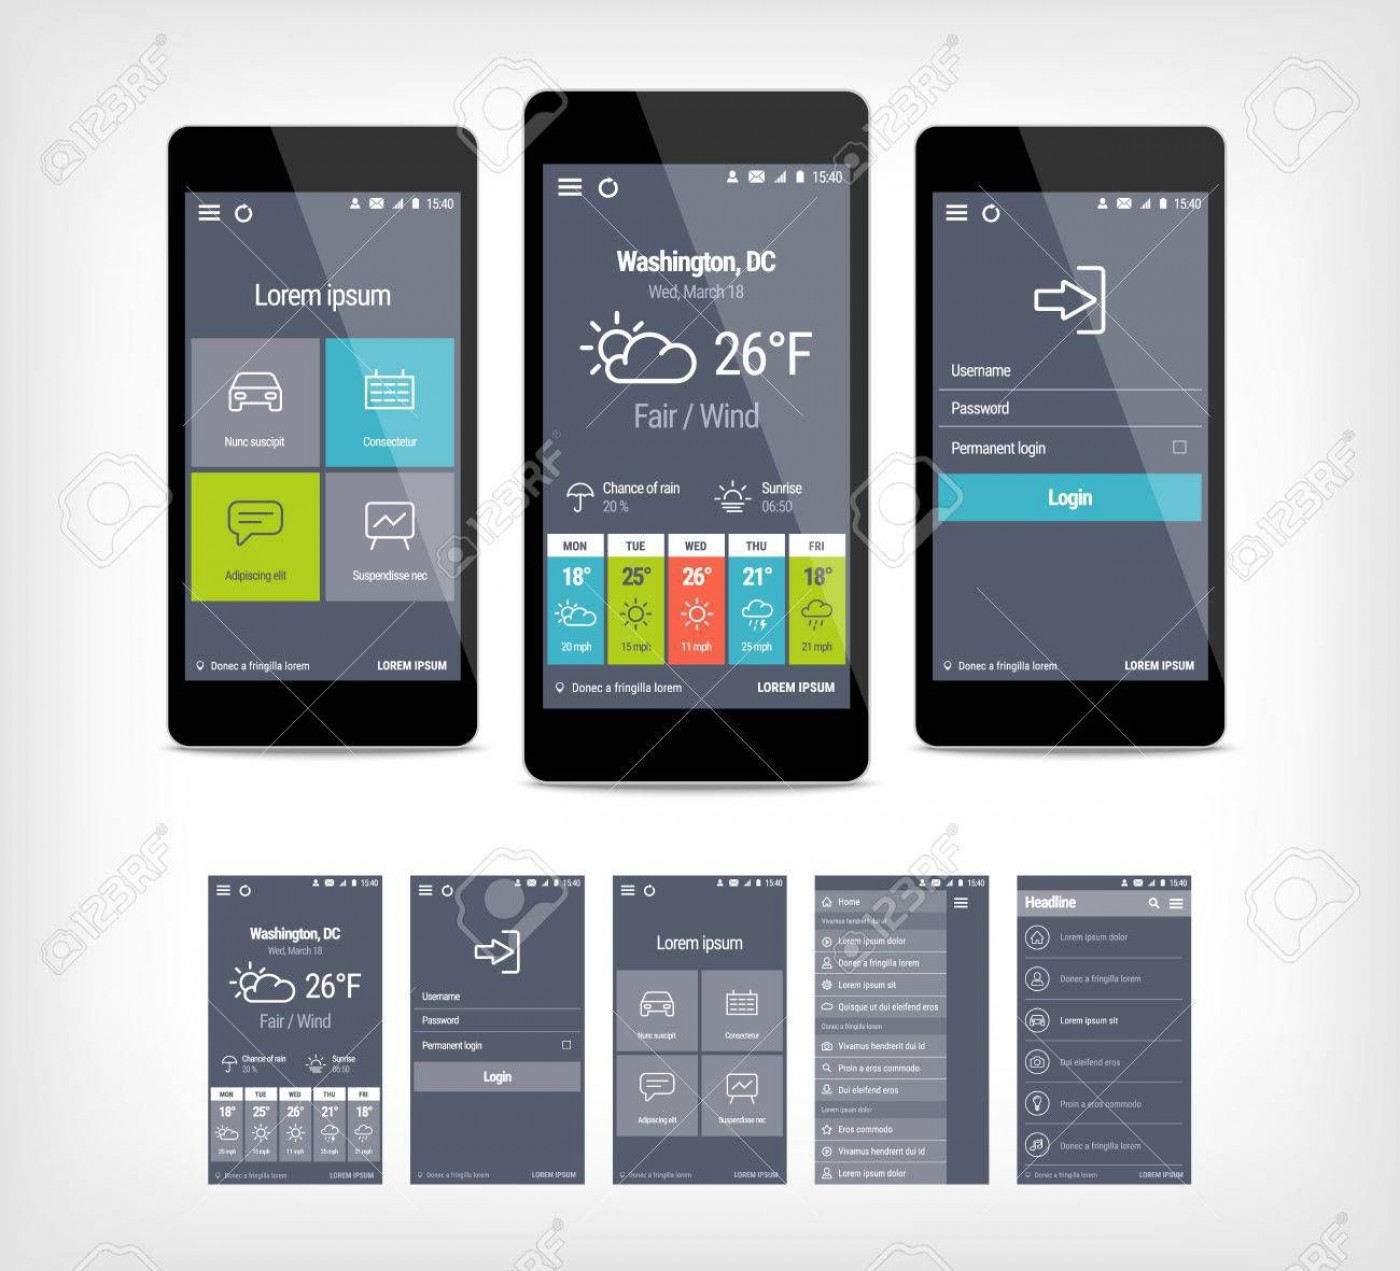 001 Remarkable Mobile App Design Template Example  Size Adobe Xd Ui Psd Free Download1400